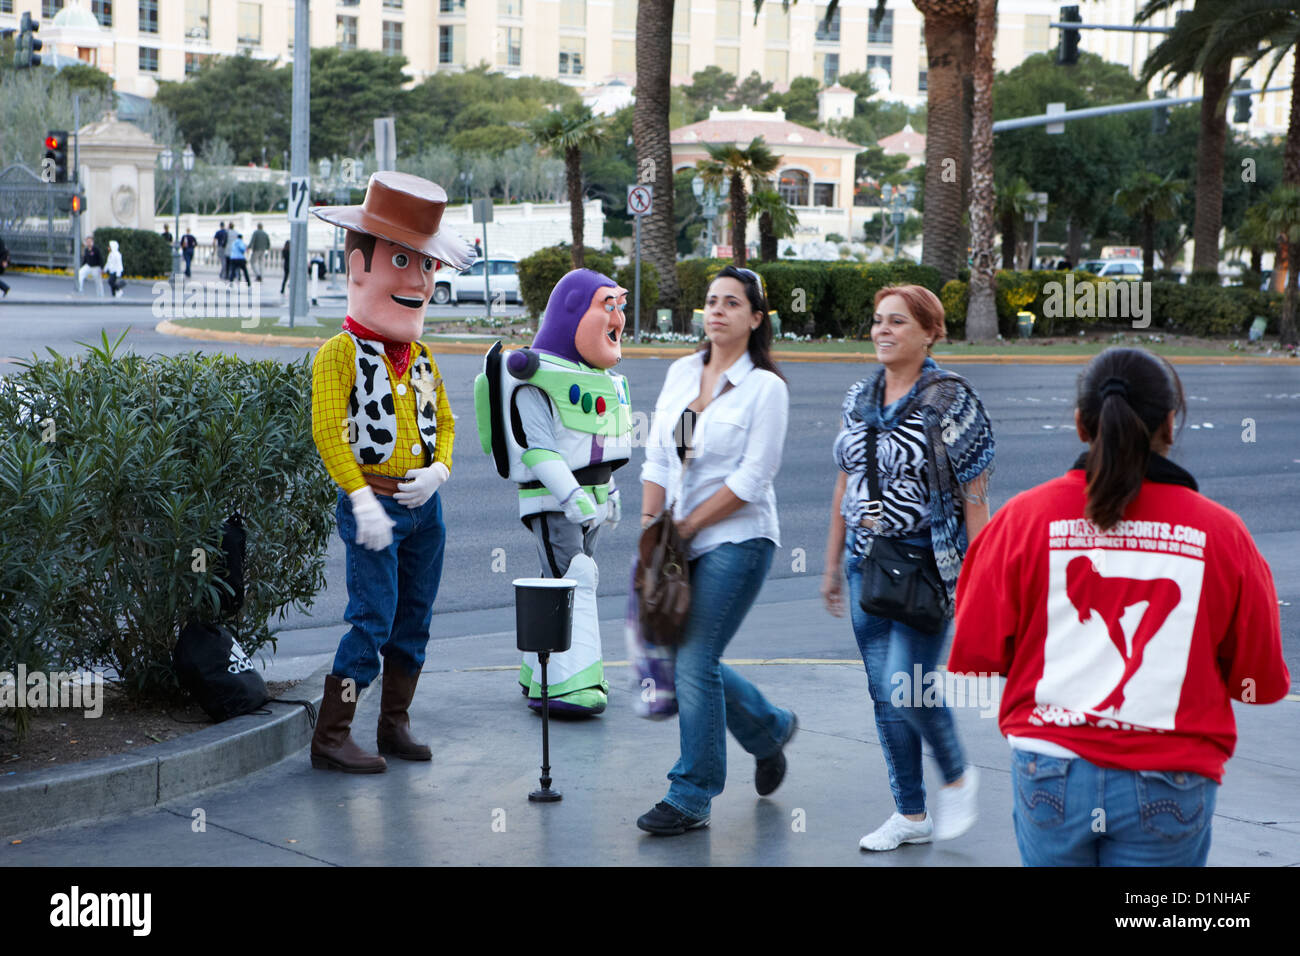 people dressed as toy story characters standing on the street for tips in Las Vegas boulevard Nevada USA - Stock Image